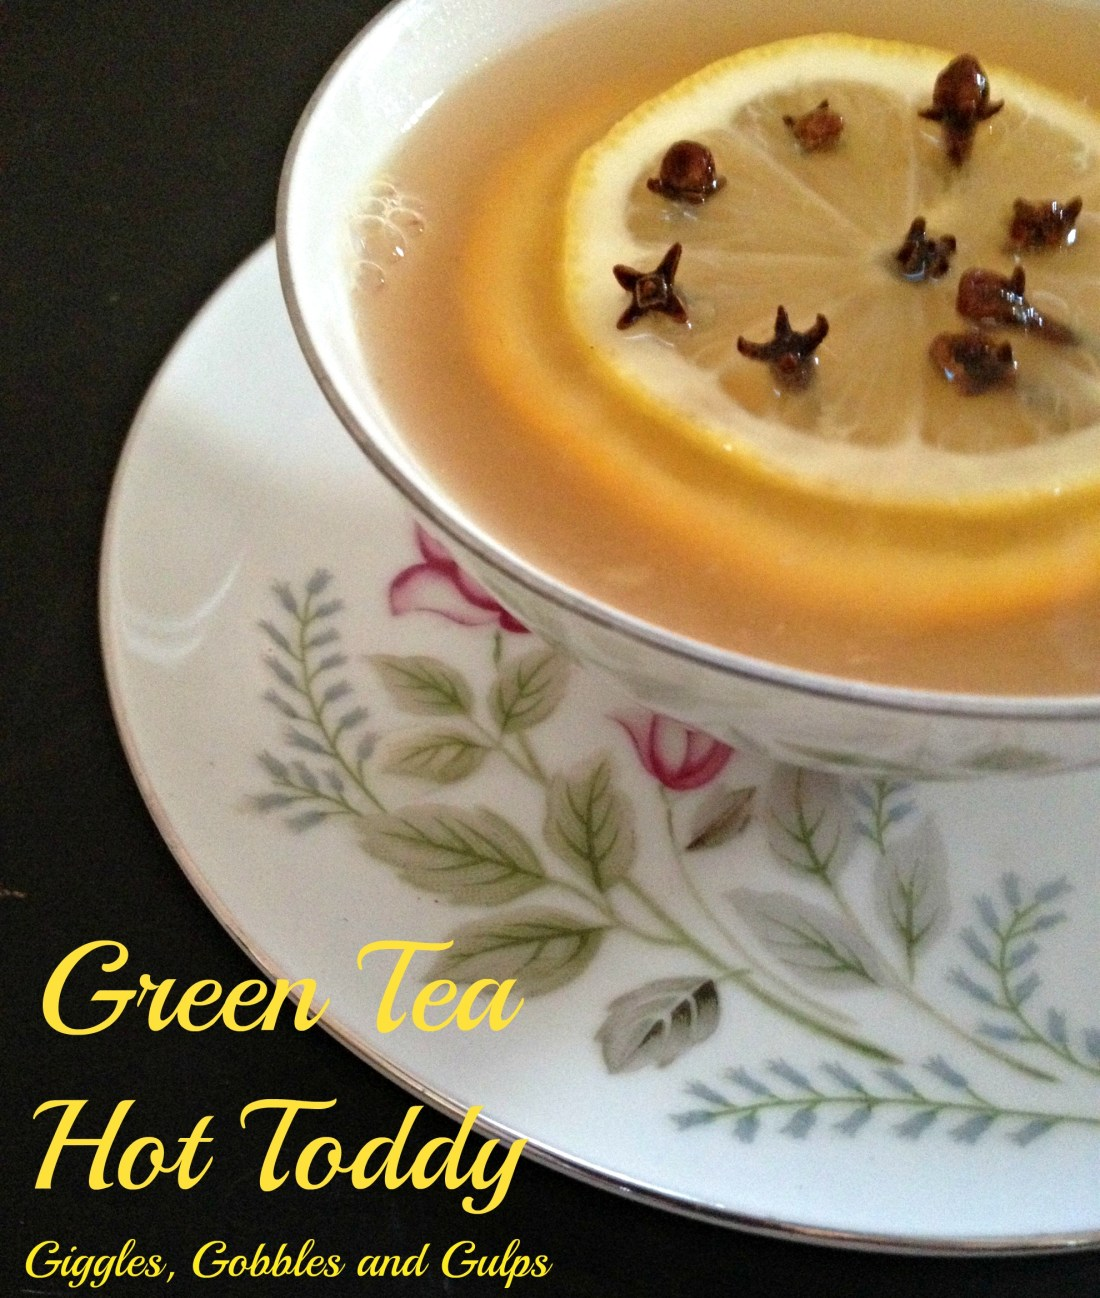 Green Tea Hot Toddy